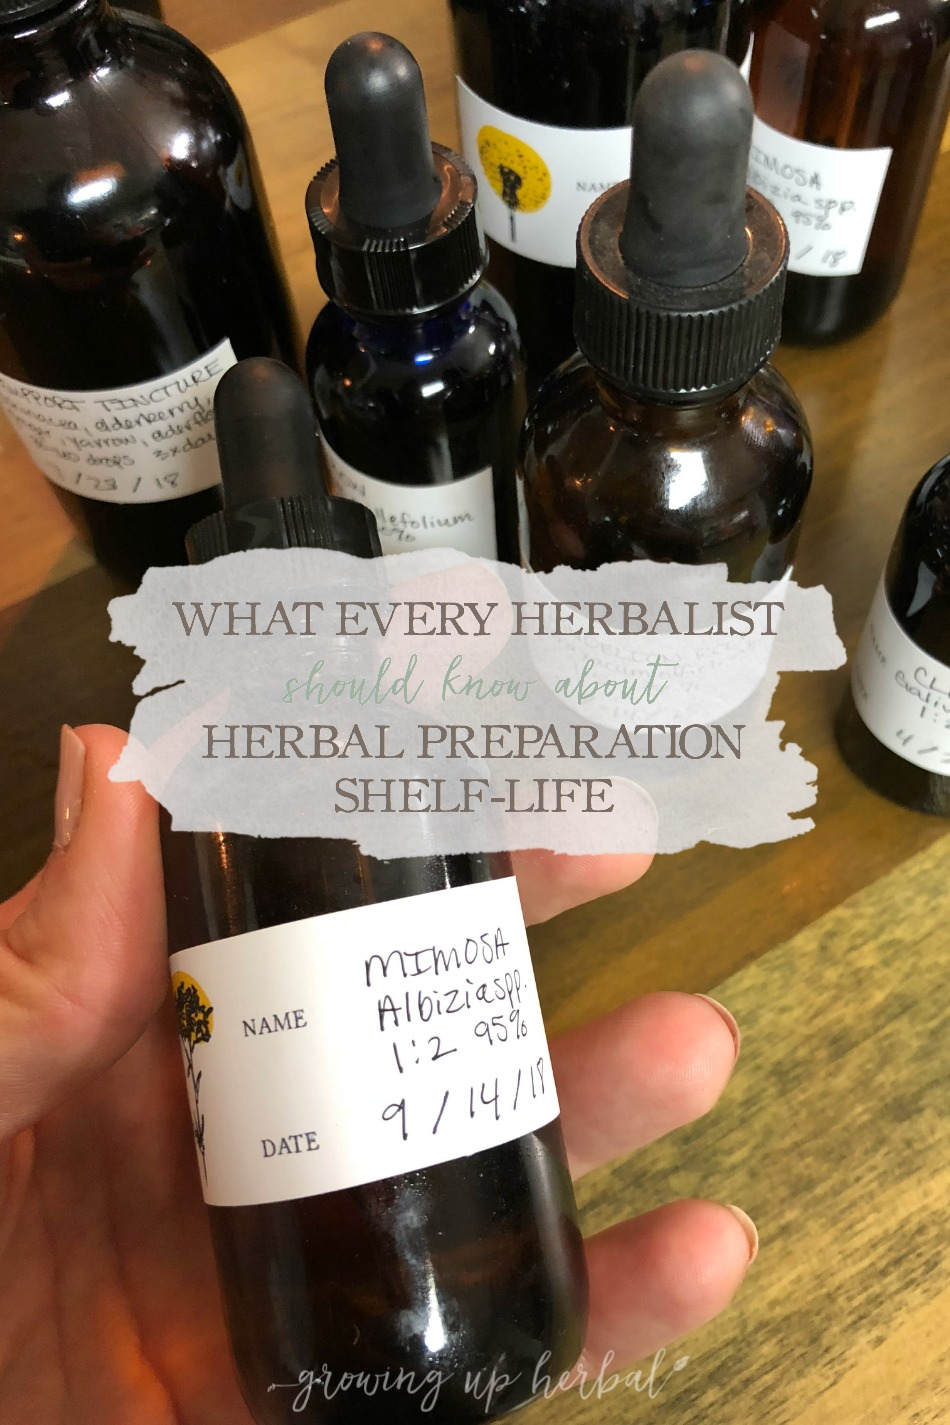 What Every Herbalist Should Know About Herbal Preparation Shelf-Life | Growing Up Herbal | Wondering if that salve, tincture, hydrosol, or other herbal preparation is still good? Here's what you need to know about herbal preparation shelf-life. Free printable included!!